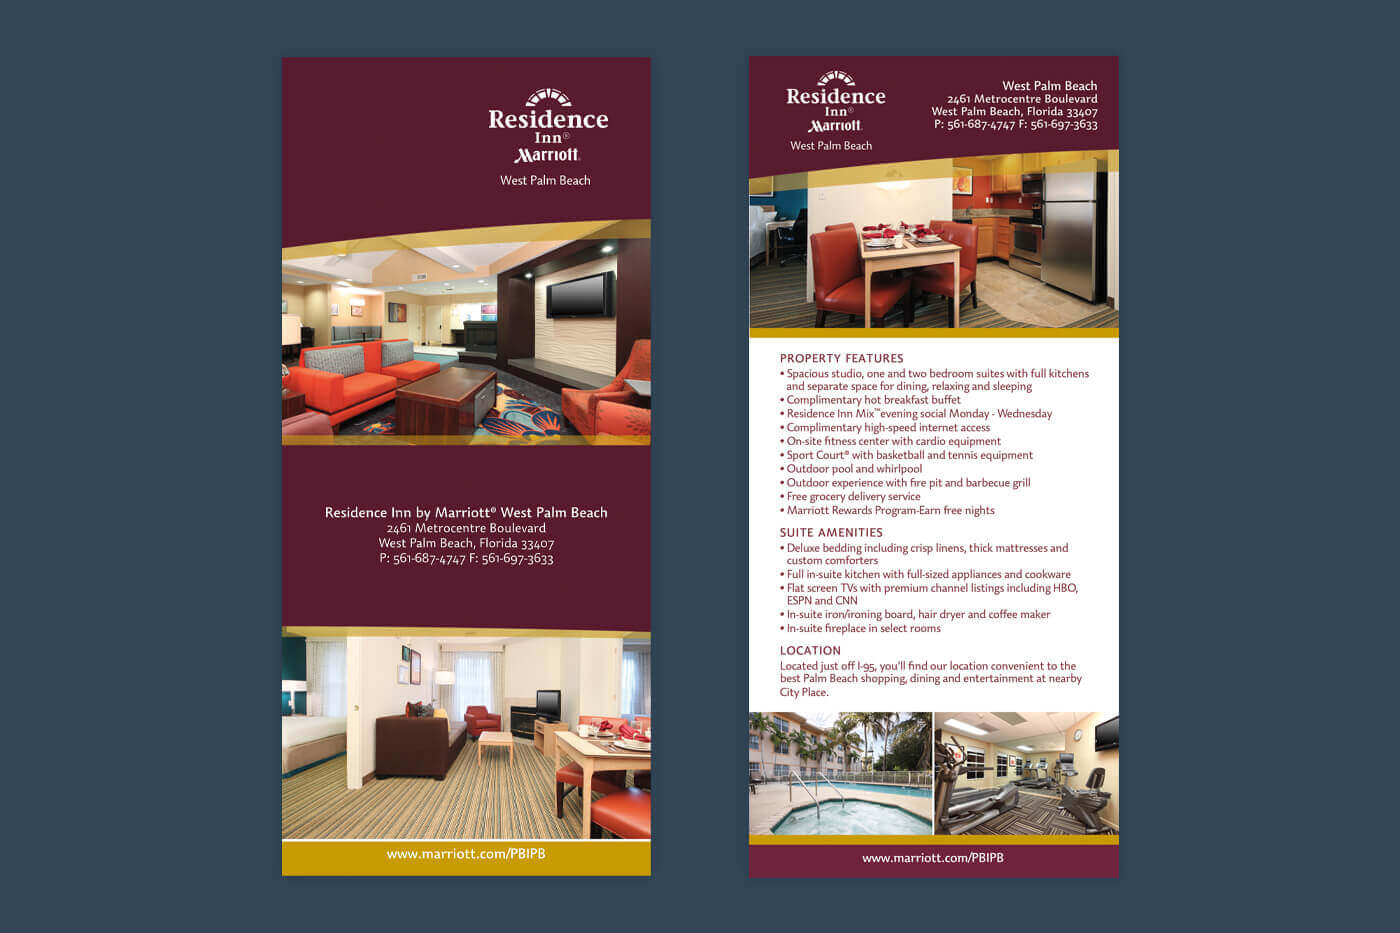 Marketing Collateral - Residence Inn West Palm Beach Rackcard